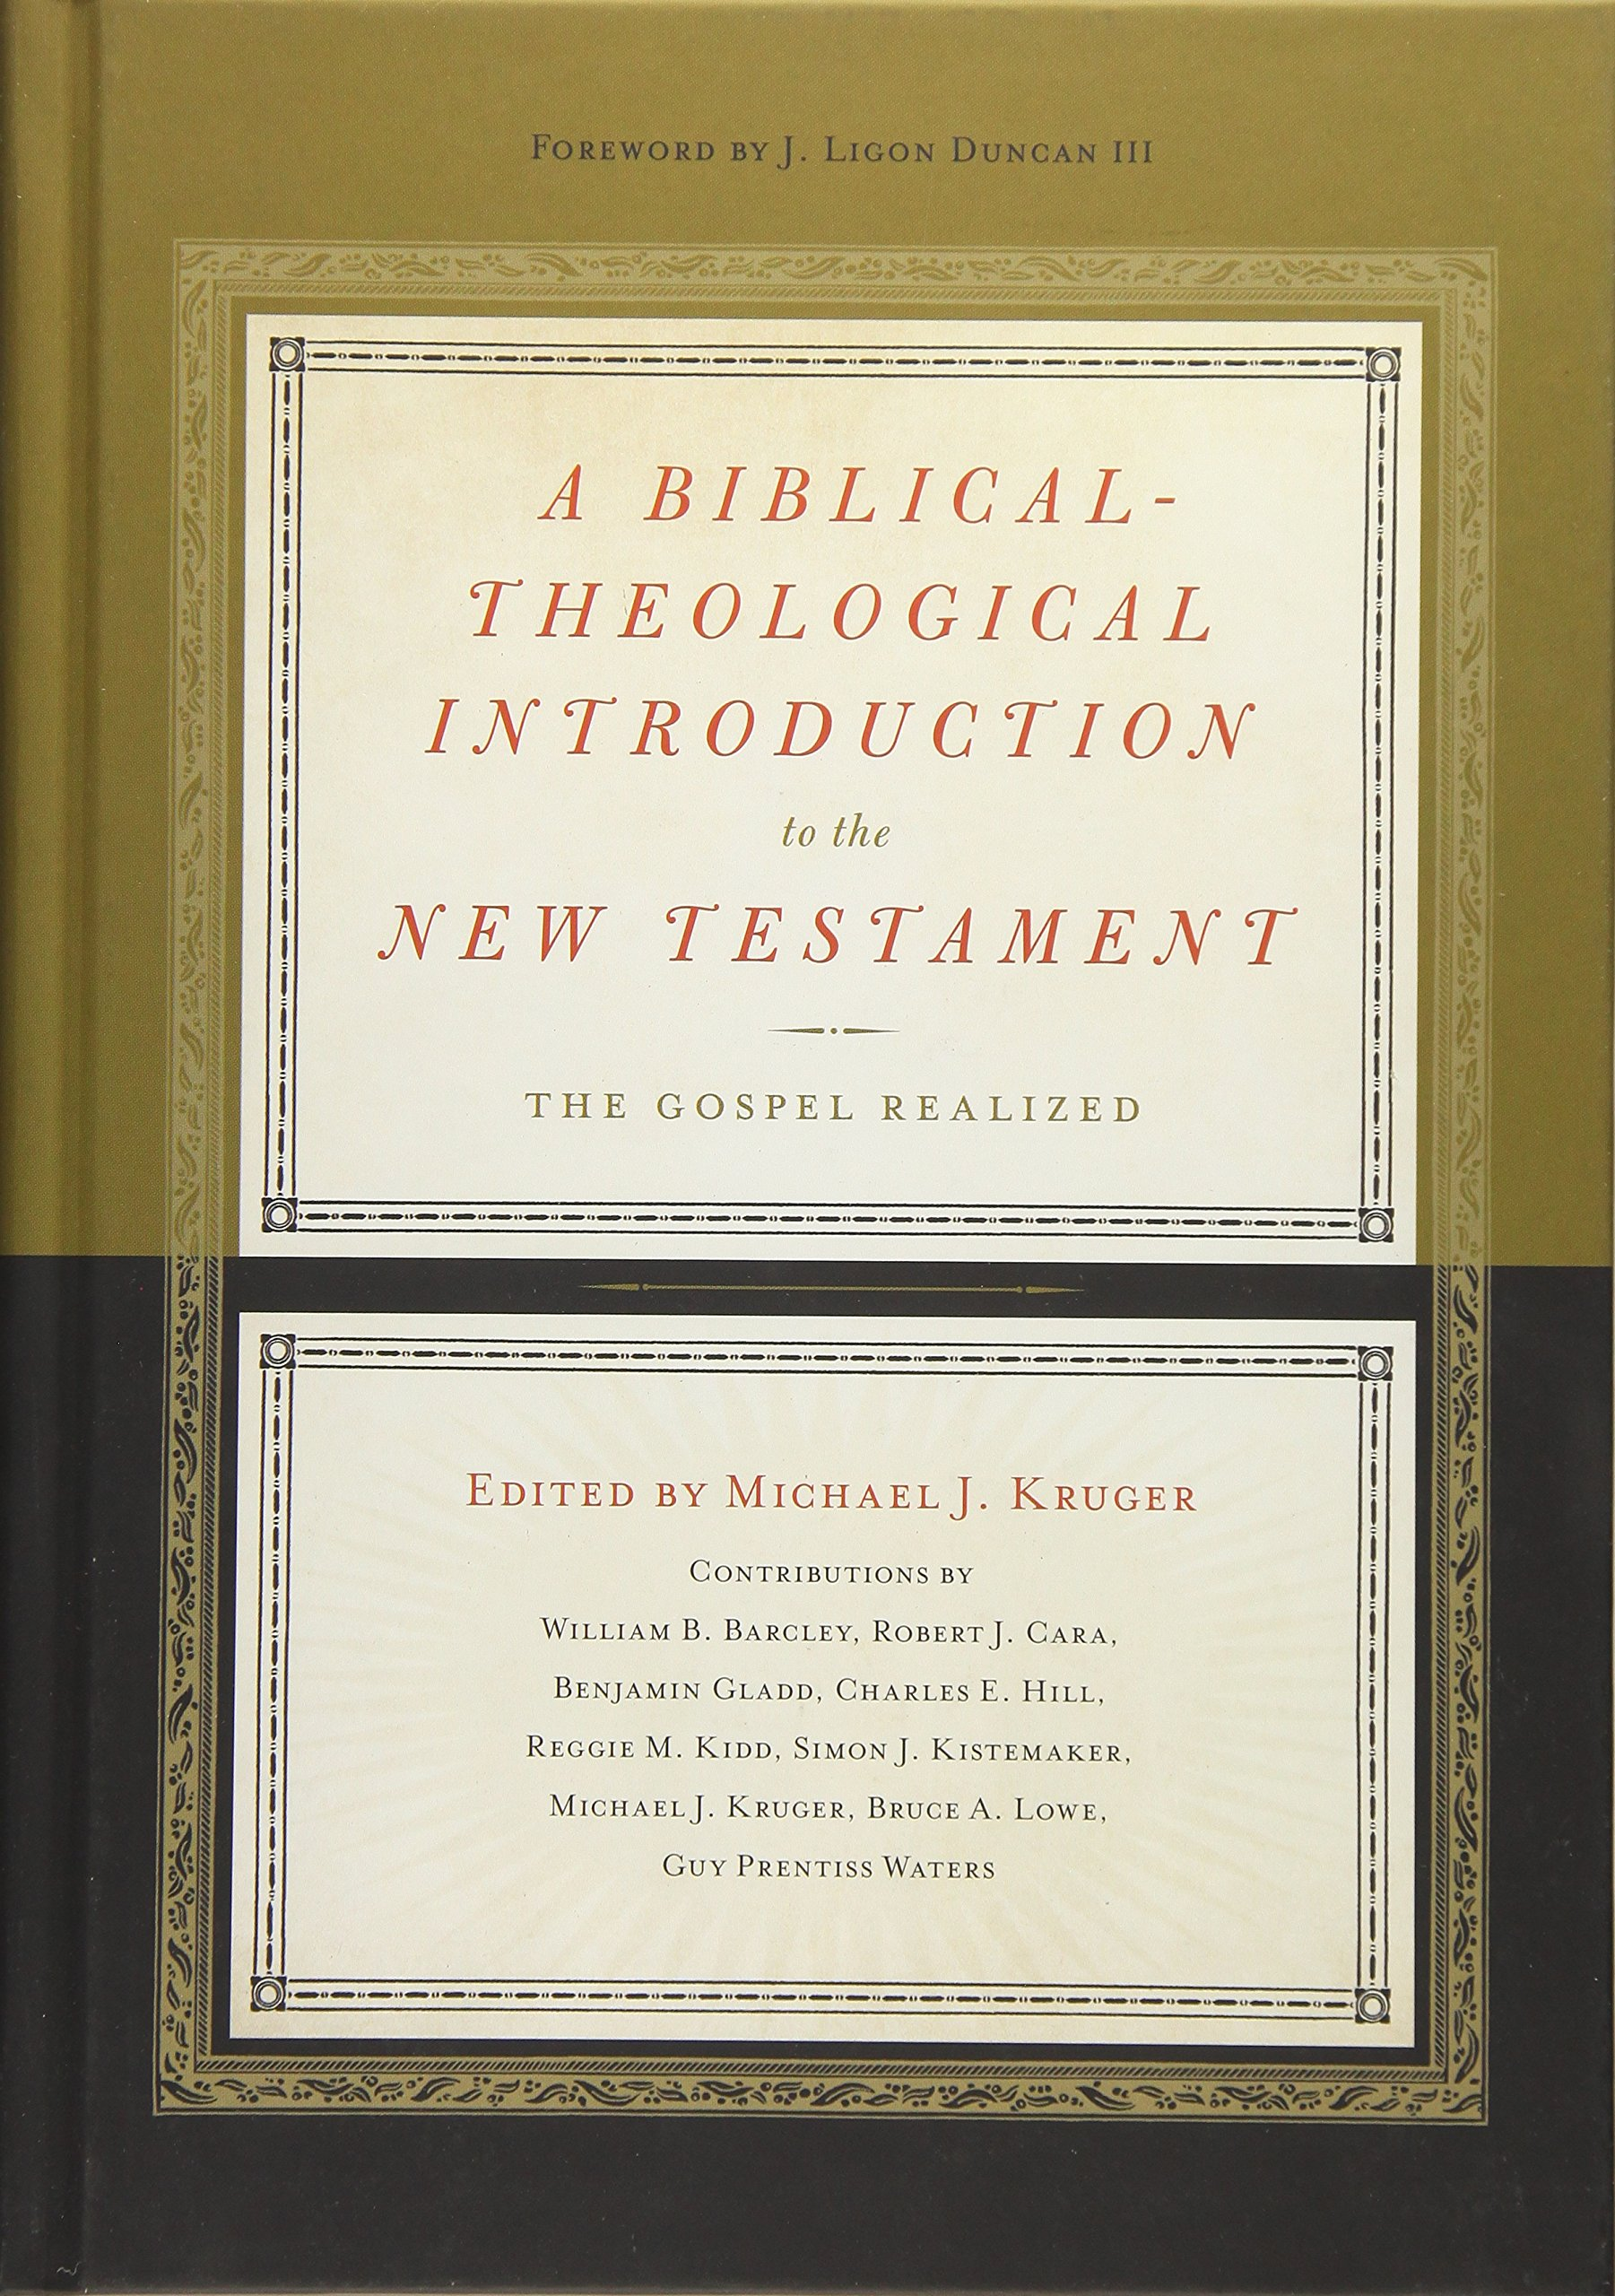 Theological Introduction